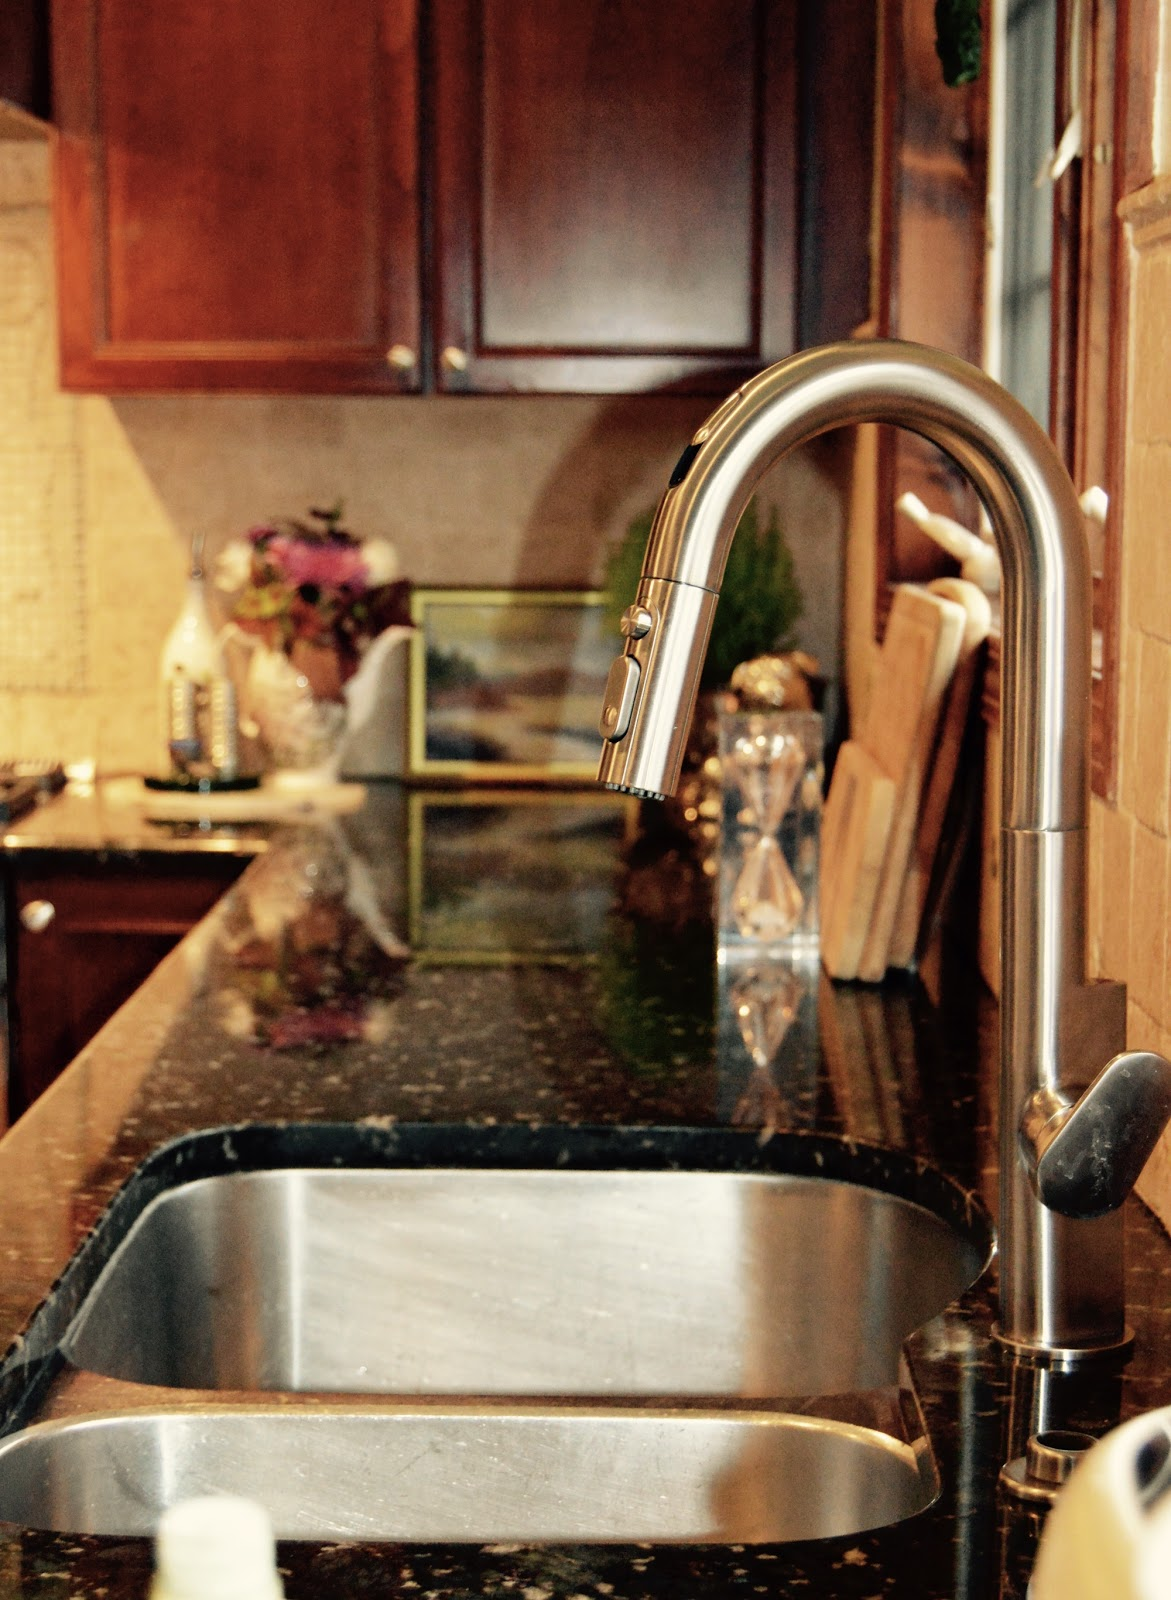 I installed the Beale Touchless / Pull Down Kitchen Faucet in stainless steel because I like the shine. It is a great improvement from the previous fixture ... & dvdInteriorDesign.com: Kitchen Refresh: 5 Ways To Update Your Kitchen